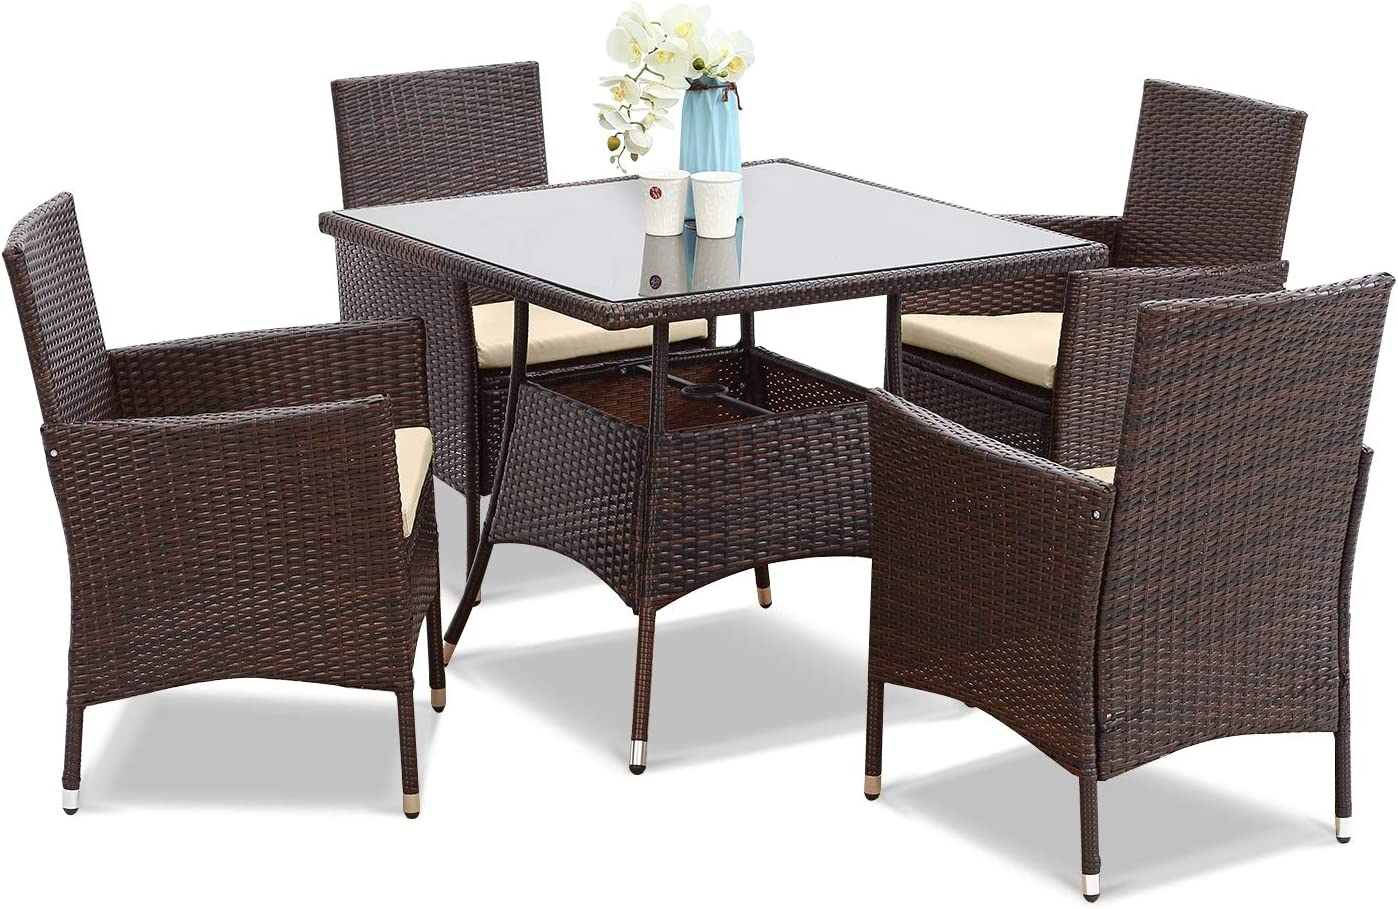 Wisteria Lane Outdoor Furniture 9 Piece Wicker Patio Dining Table and Chair  Set,Square Tempered Glass Table Top with Umbrella Hole for Backyard,Brown